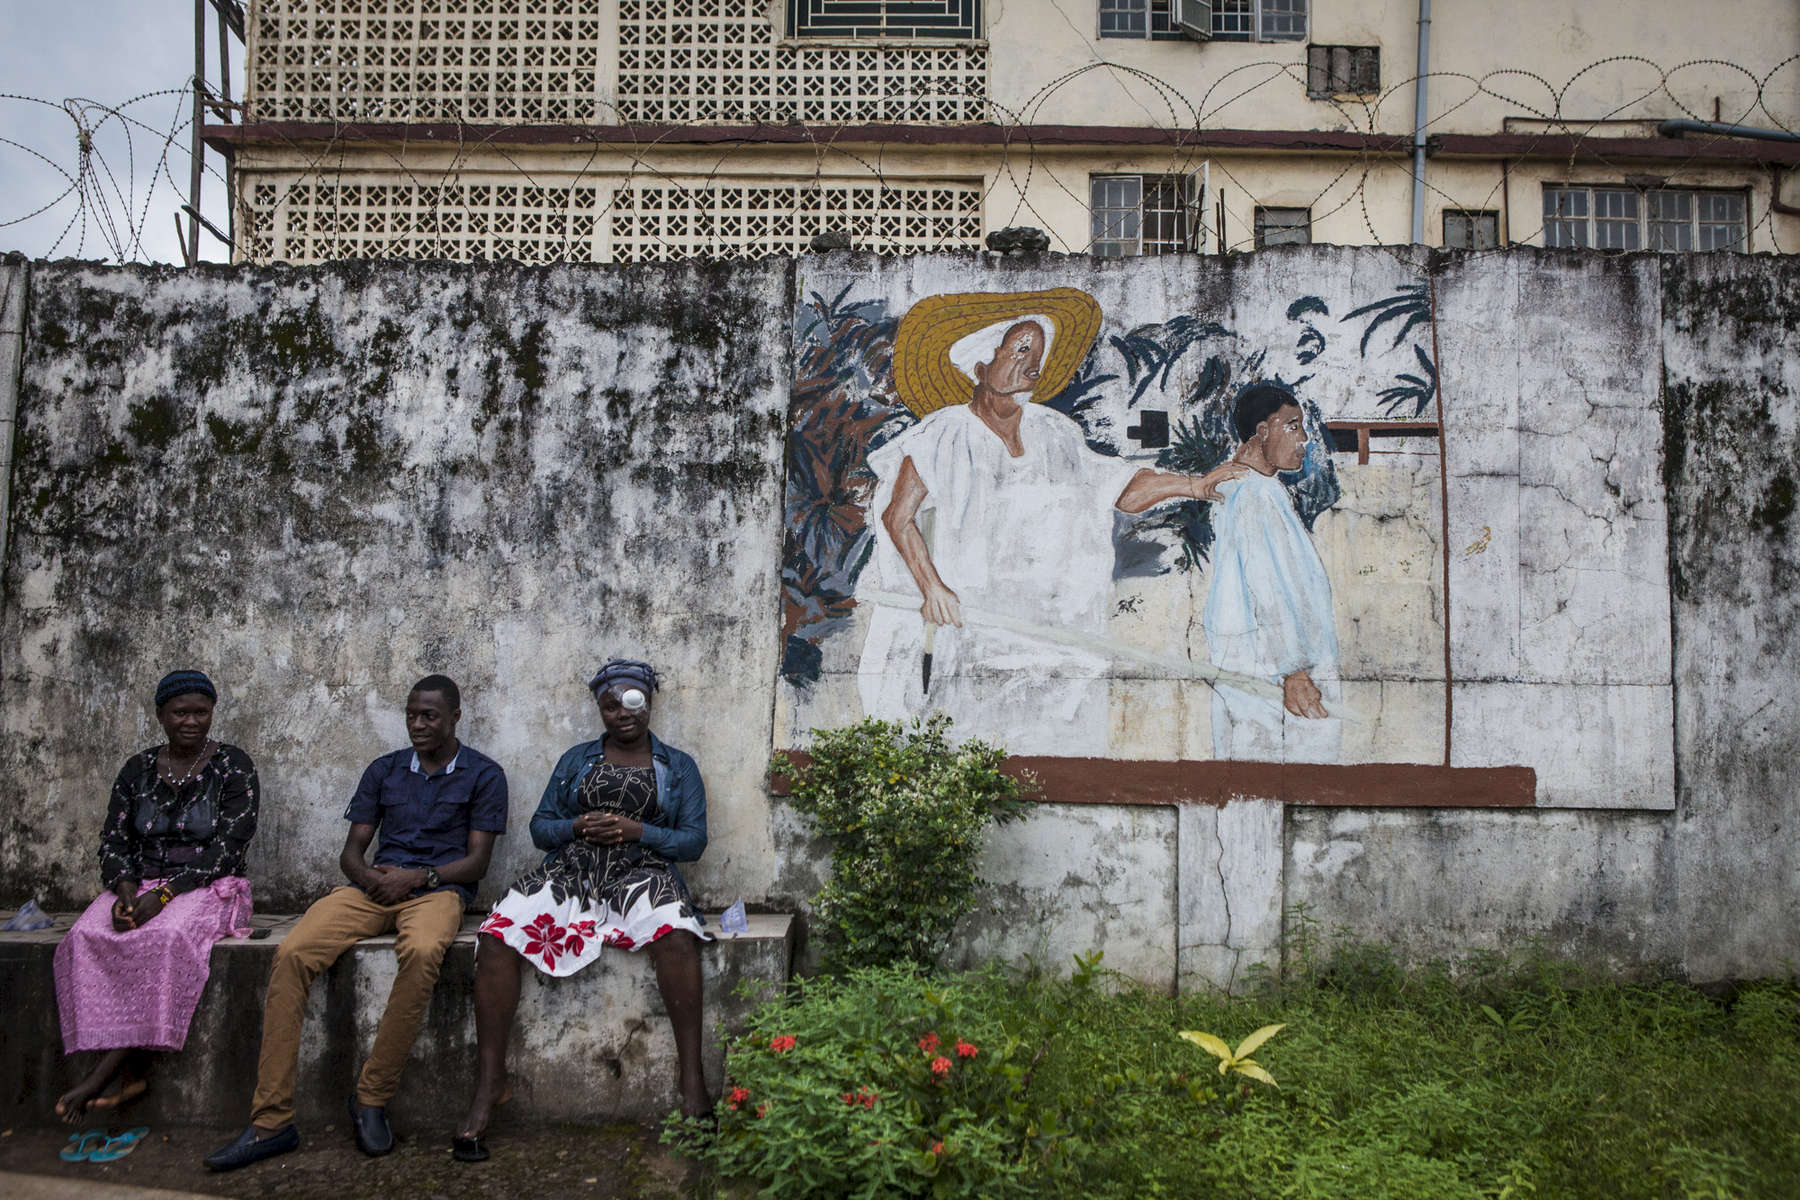 Patients sit on a bench at the entrance of the Kissy United Methodist Church Eye Hospital in Freetown, Sierra Leone